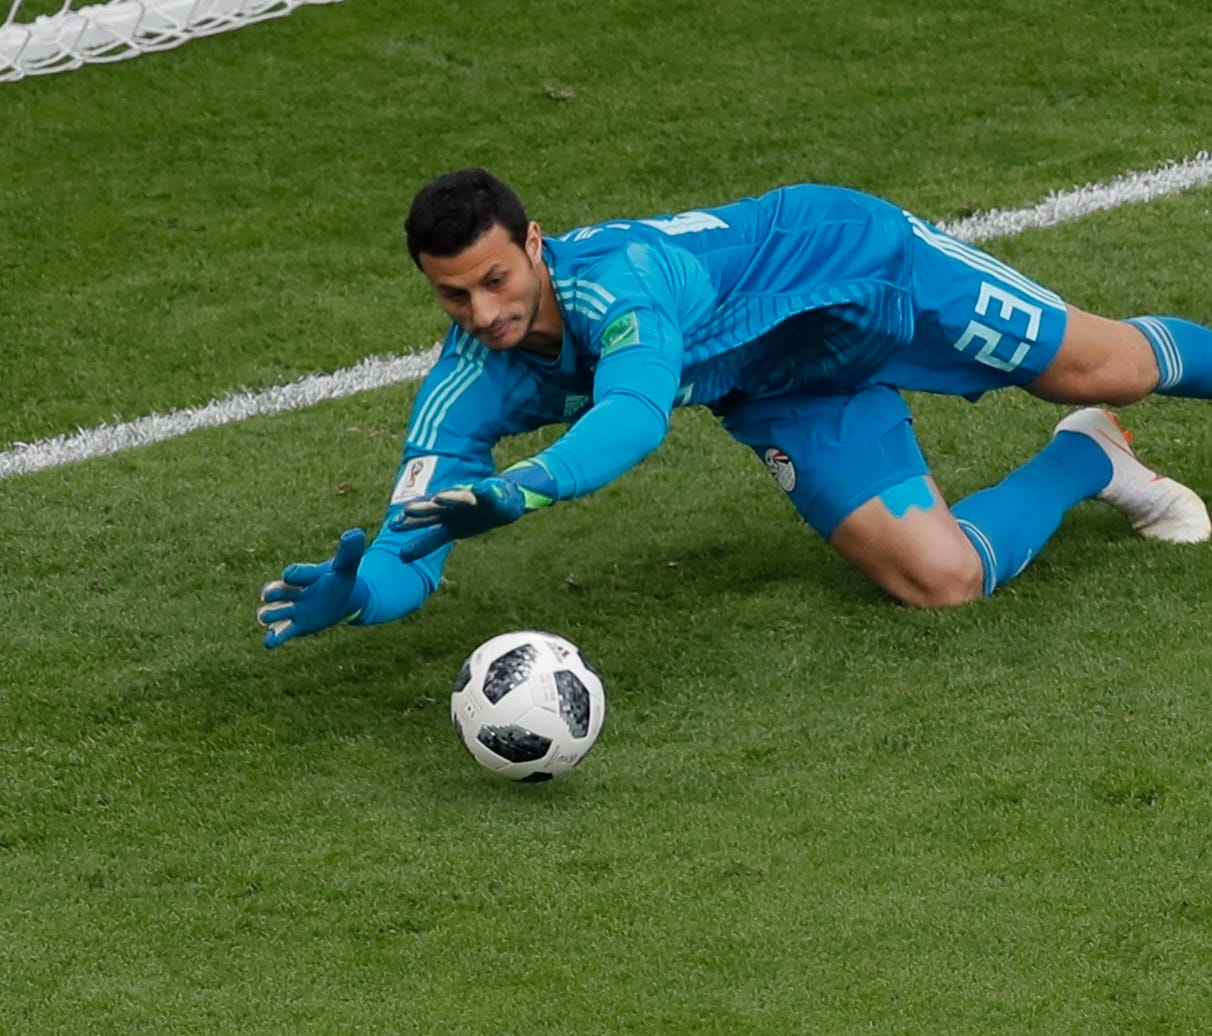 Egypt goalkeeper Mohamed El-Shenawy makes a stop against Uruguay.